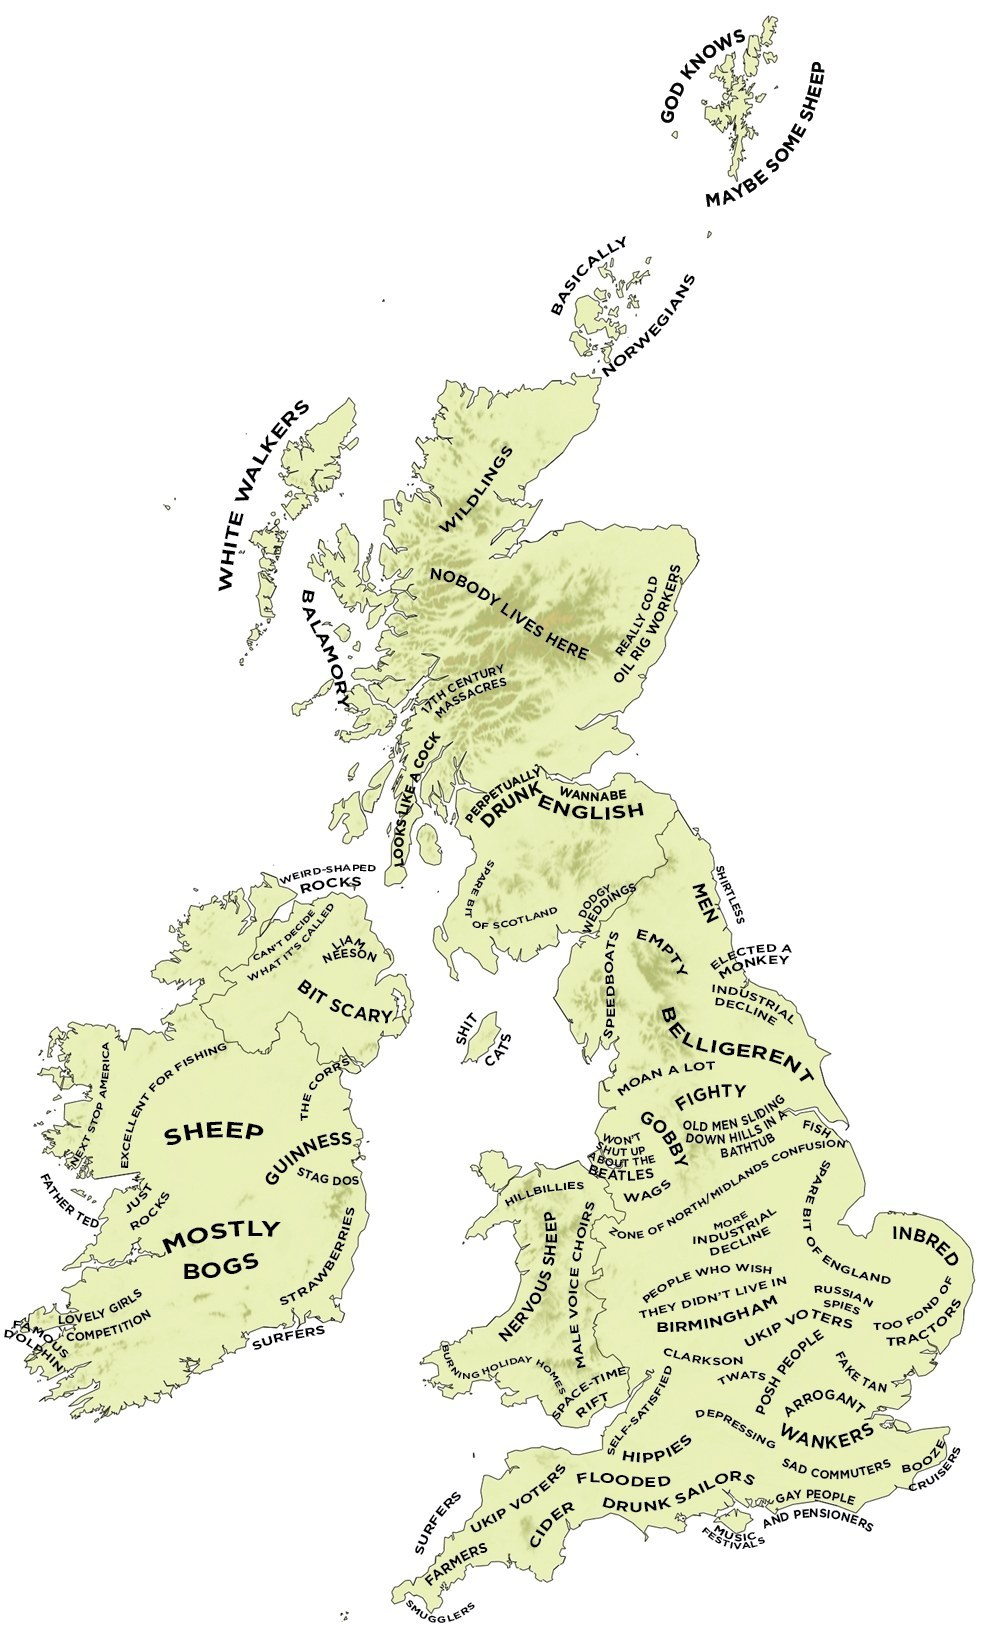 "With thanks to Tom Phillips - find his site here"" http://www.buzzfeed.com/tomphillips/the-definitive-stereotype-map-of-britain-and-ireland - and Michael Carnell, who passed this on to me! he's at http://www.michaelcarnell.com"